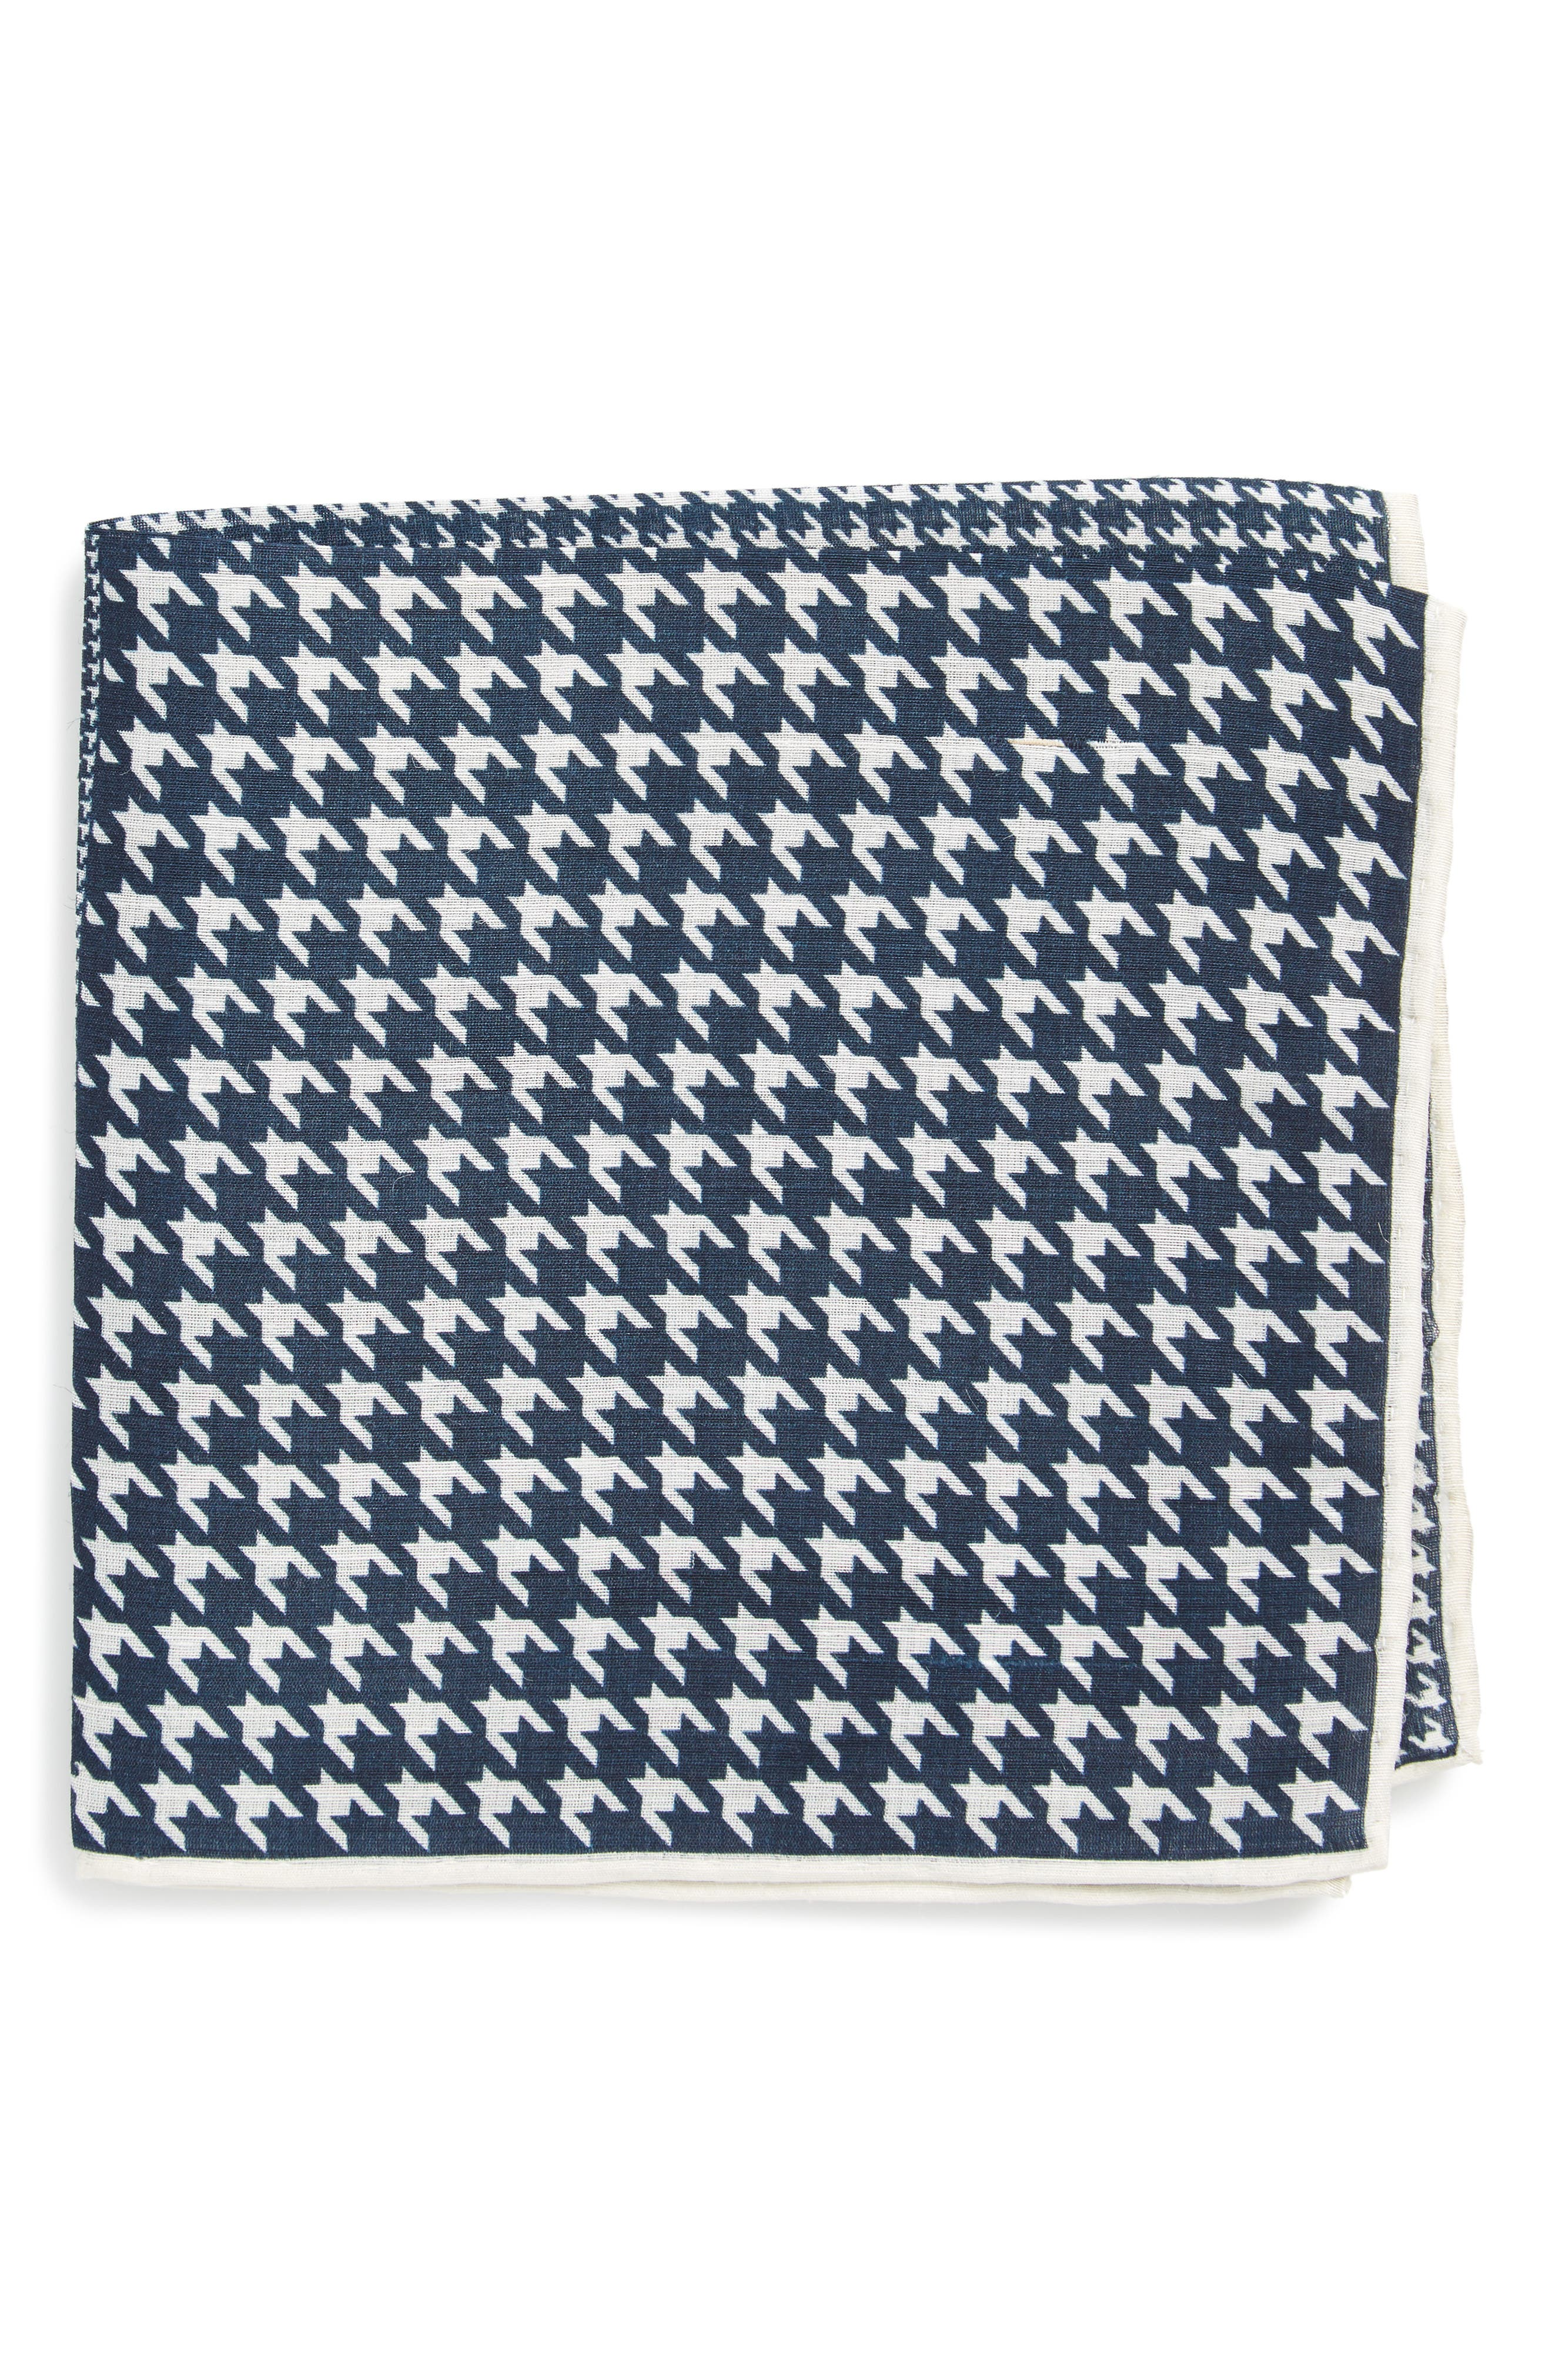 Alternate Image 1 Selected - The Tie Bar Houndstooth Pocket Square